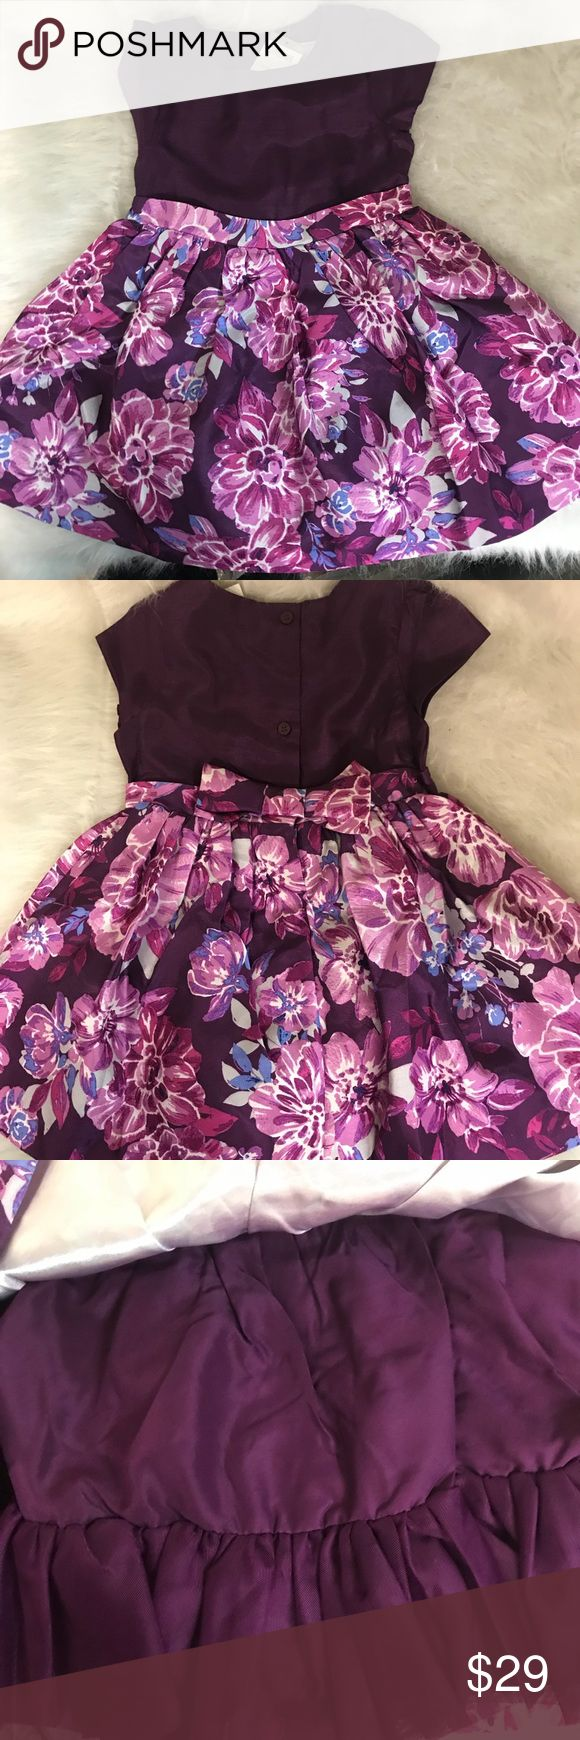 Gymboree 2 pc dress & bloomers 18-24 Mos Beautiful dress with matching wine color bloomers. Lined skirt. Just stunning. New with tags. Retail $54 Gymboree Dresses